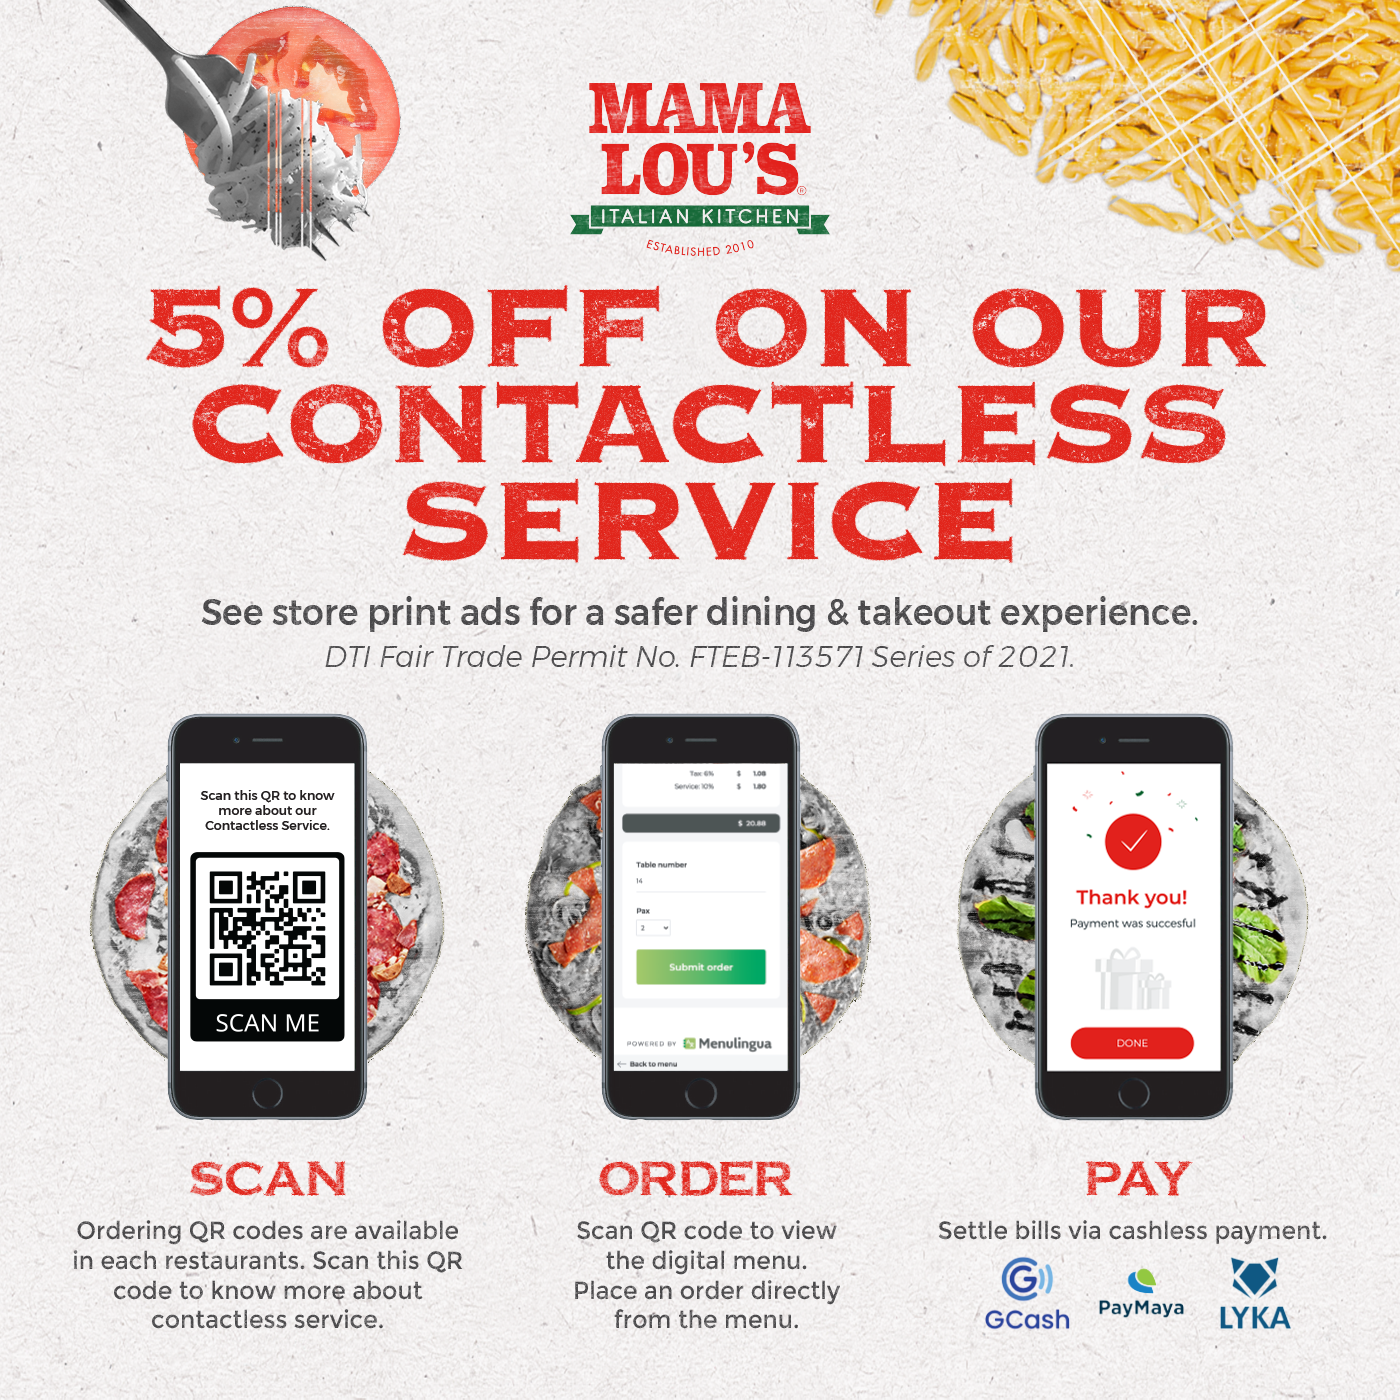 mama lou's contactless service